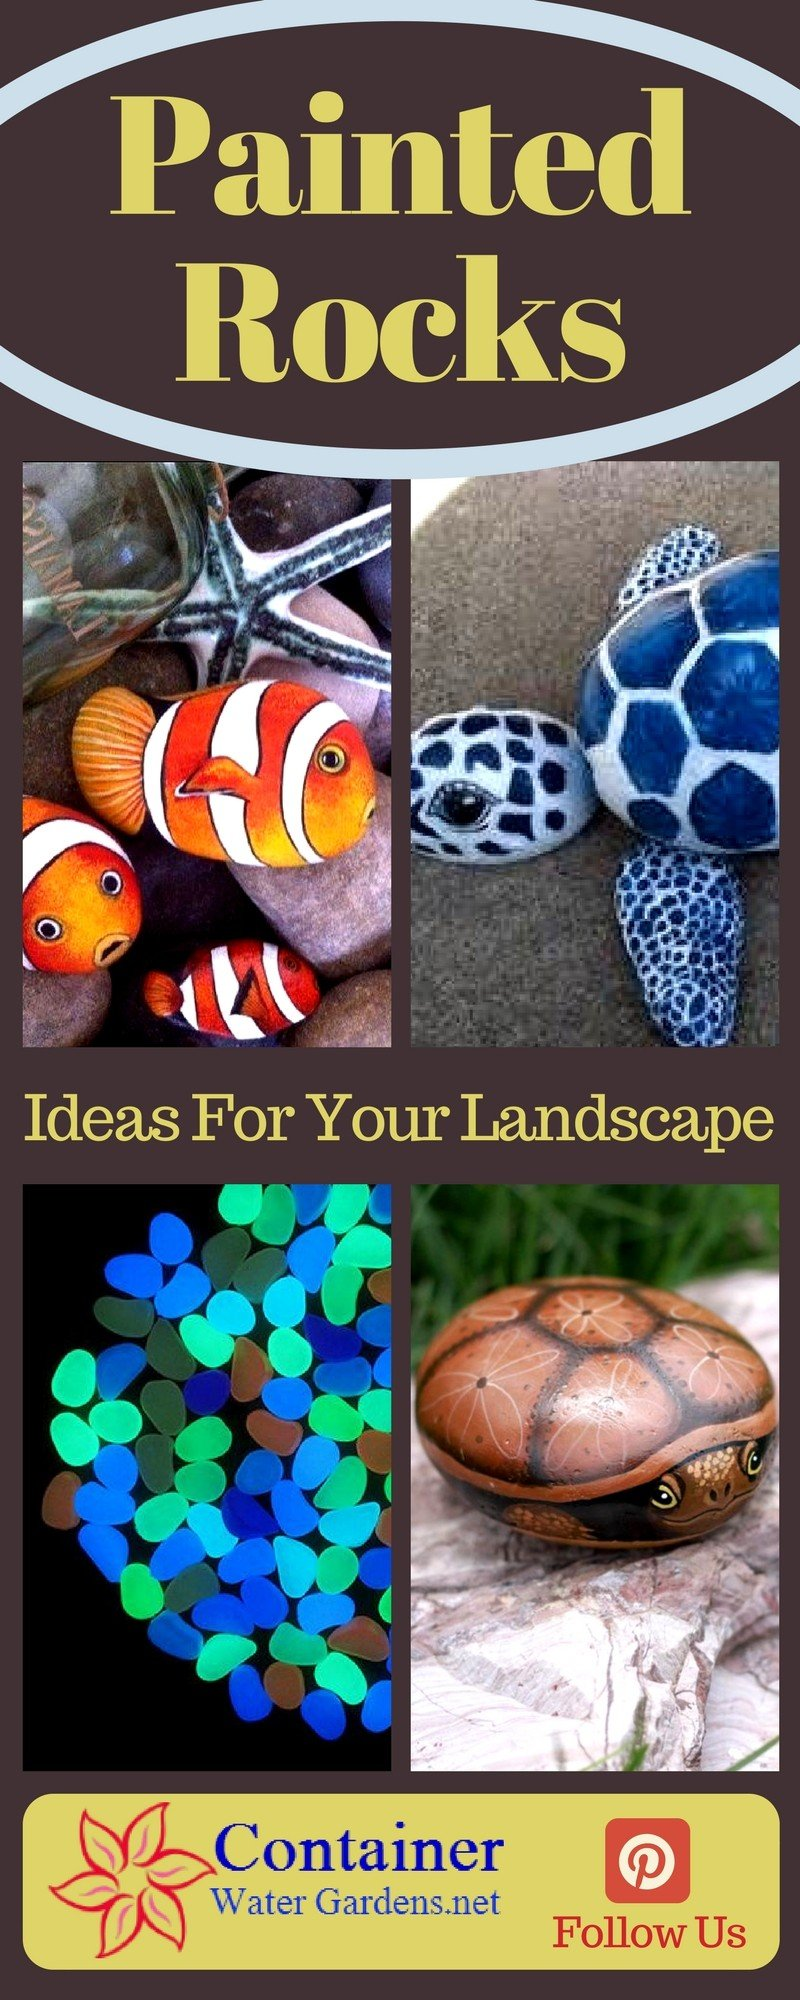 Painted Rocks Landscaping Ideas